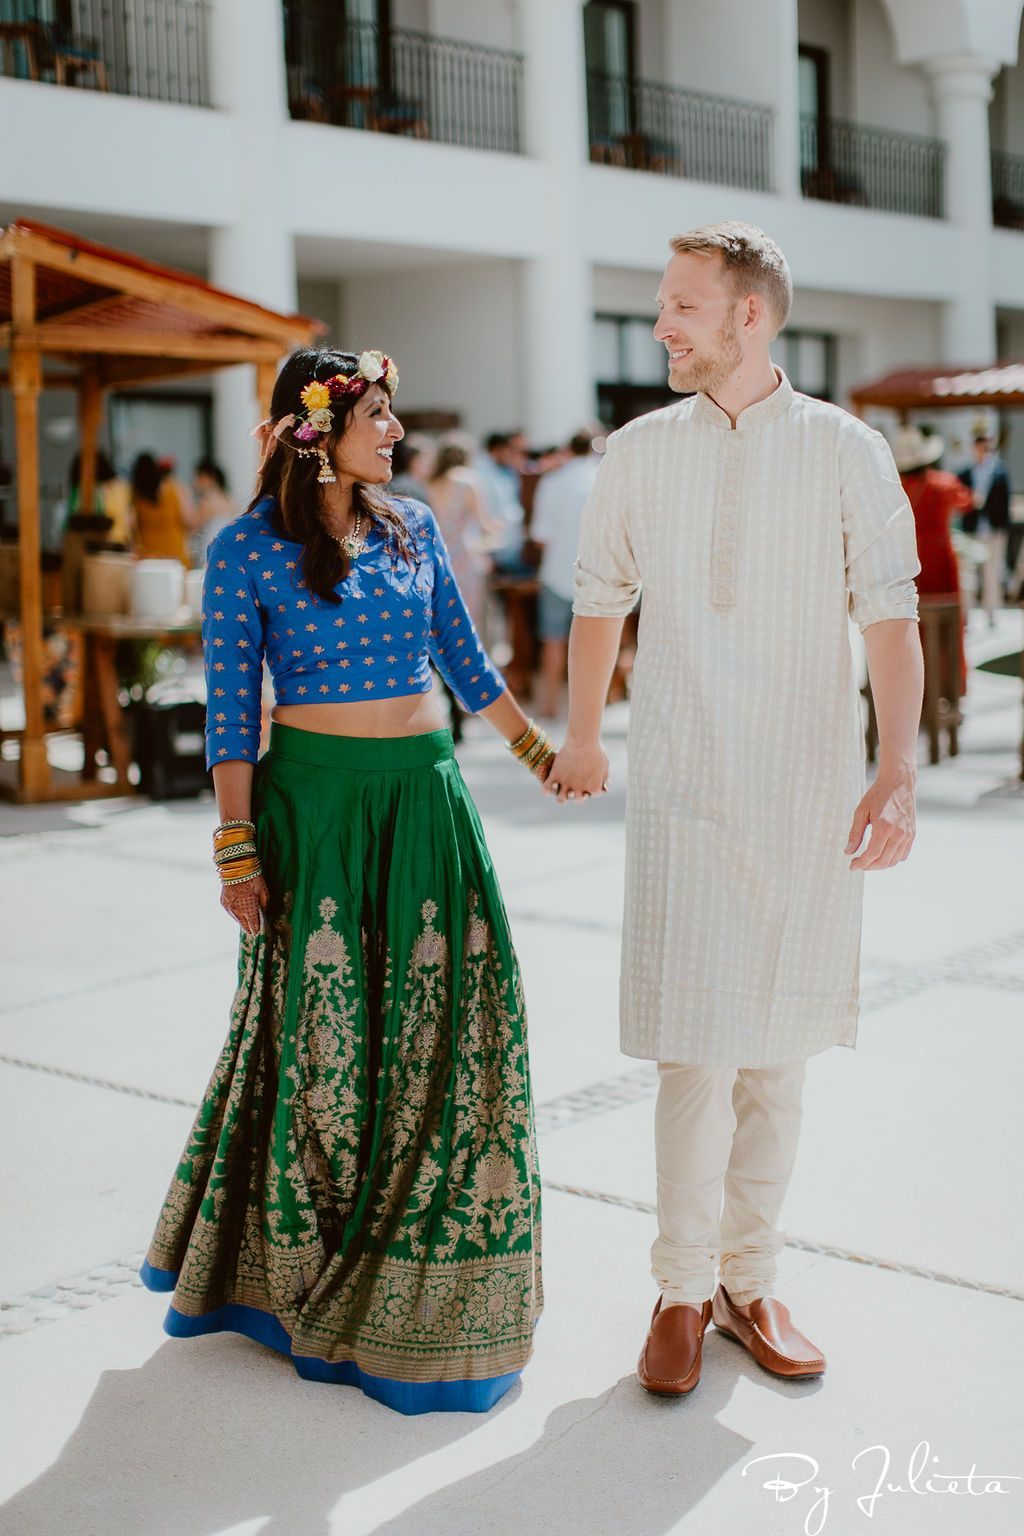 Bride and Groom posing for the amazing Julieta Amezcua, who was their photographer for their wedding weekend. They had their Haldi and Sangeet at the Hilton Los Cabos, and then their beautiful wedding at Flora Farms.